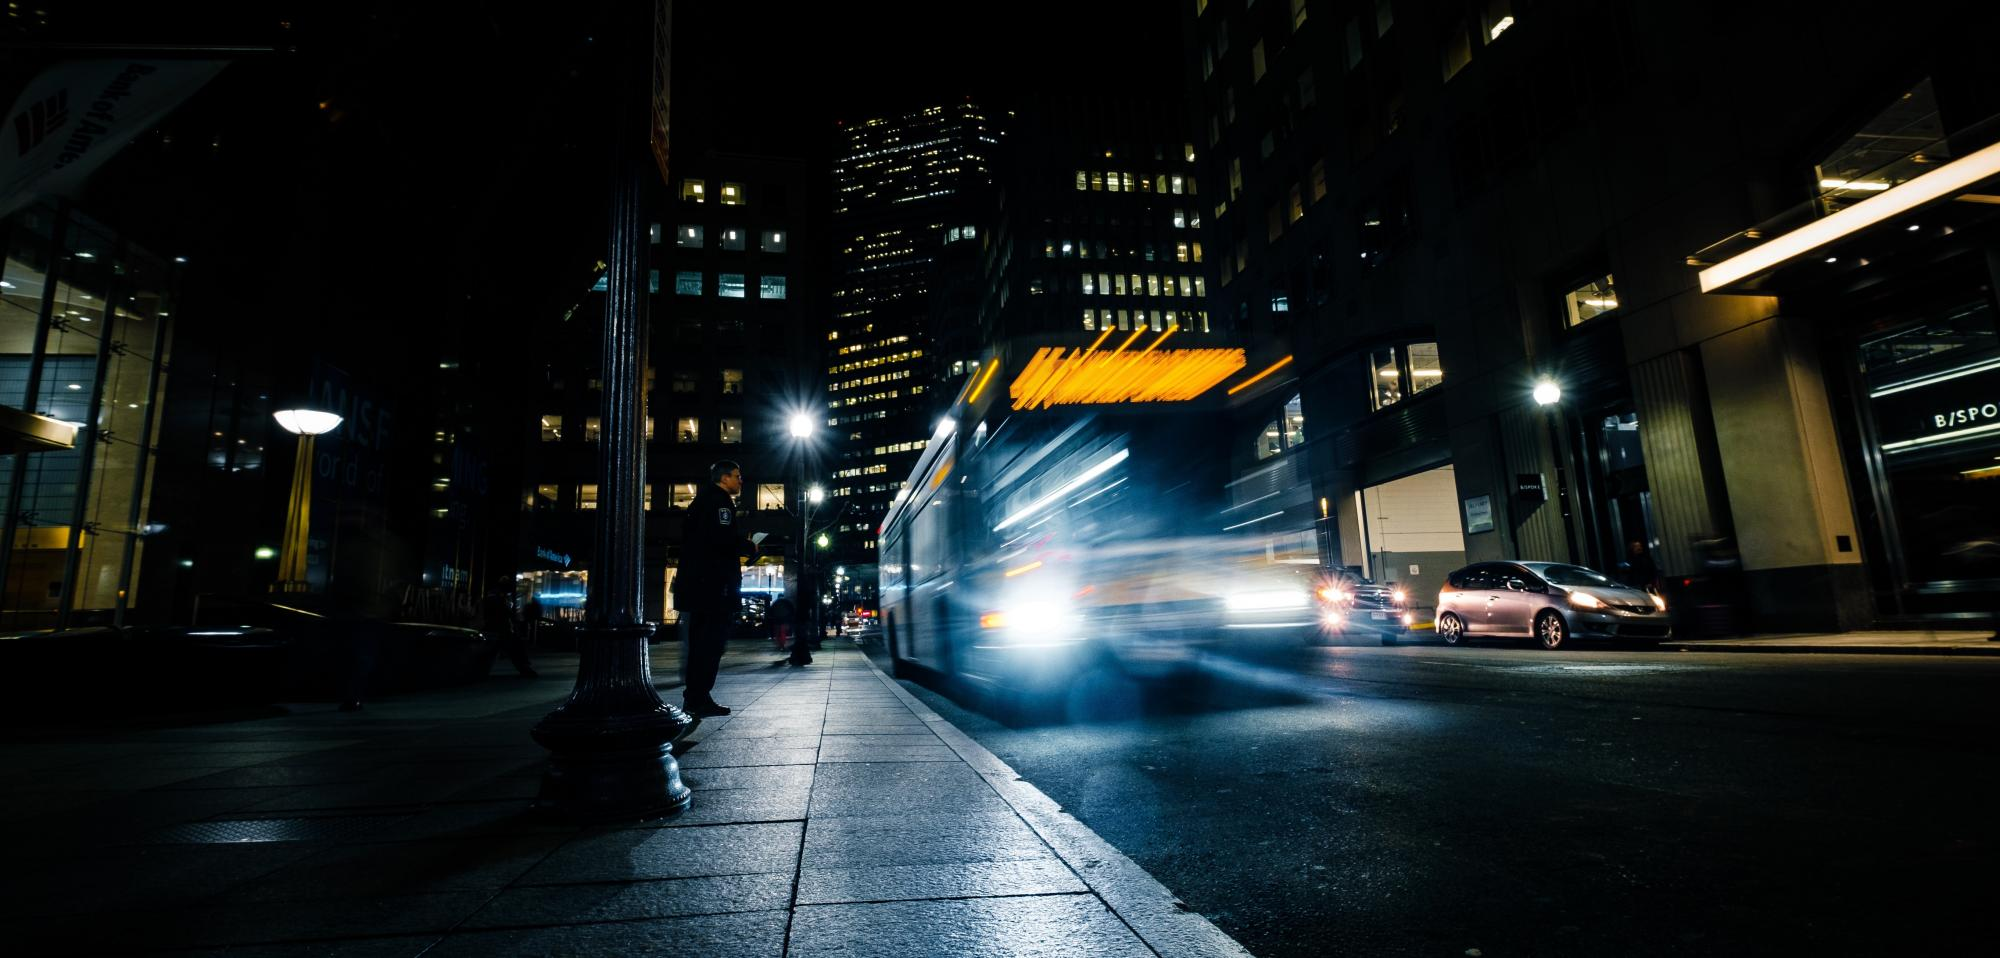 A bus at night in downtown Boston. Photo by Osman Rana, from Unsplash.